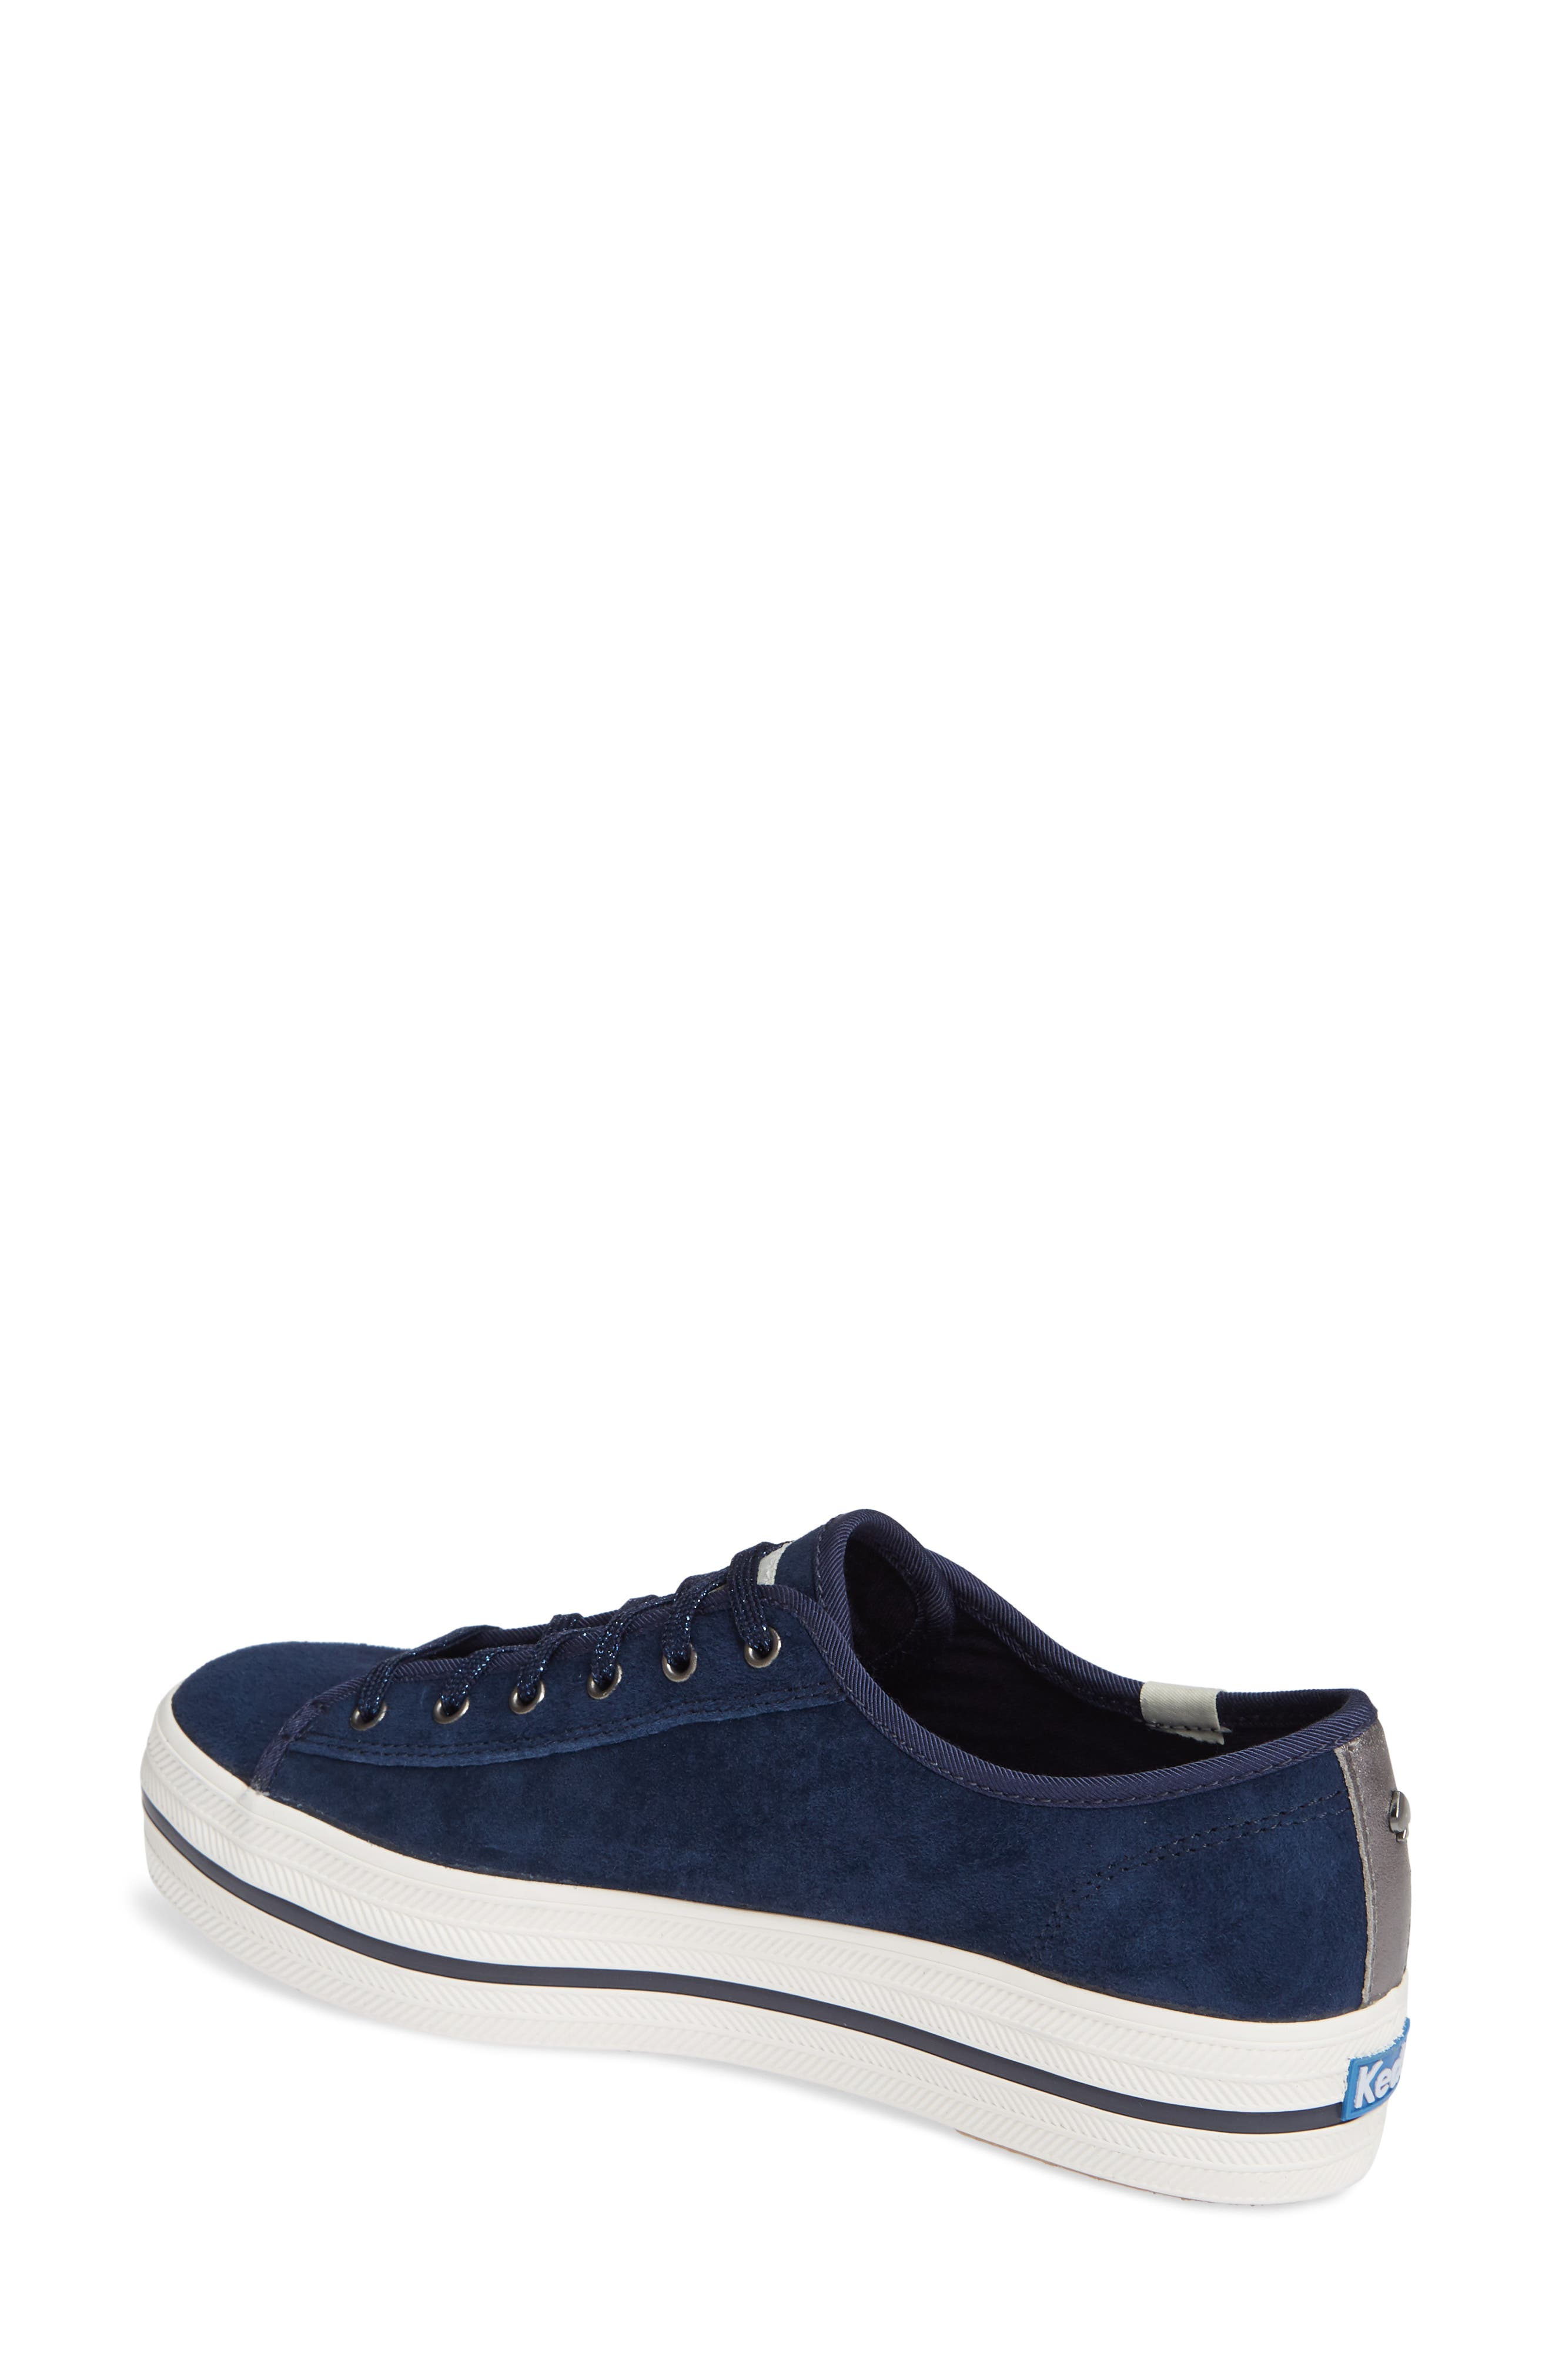 KEDS<SUP>®</SUP> FOR KATE SPADE NEW YORK, Keds<sup>®</sup> x kate spade new york triple kicks platform sneaker, Alternate thumbnail 2, color, NAVY SUEDE